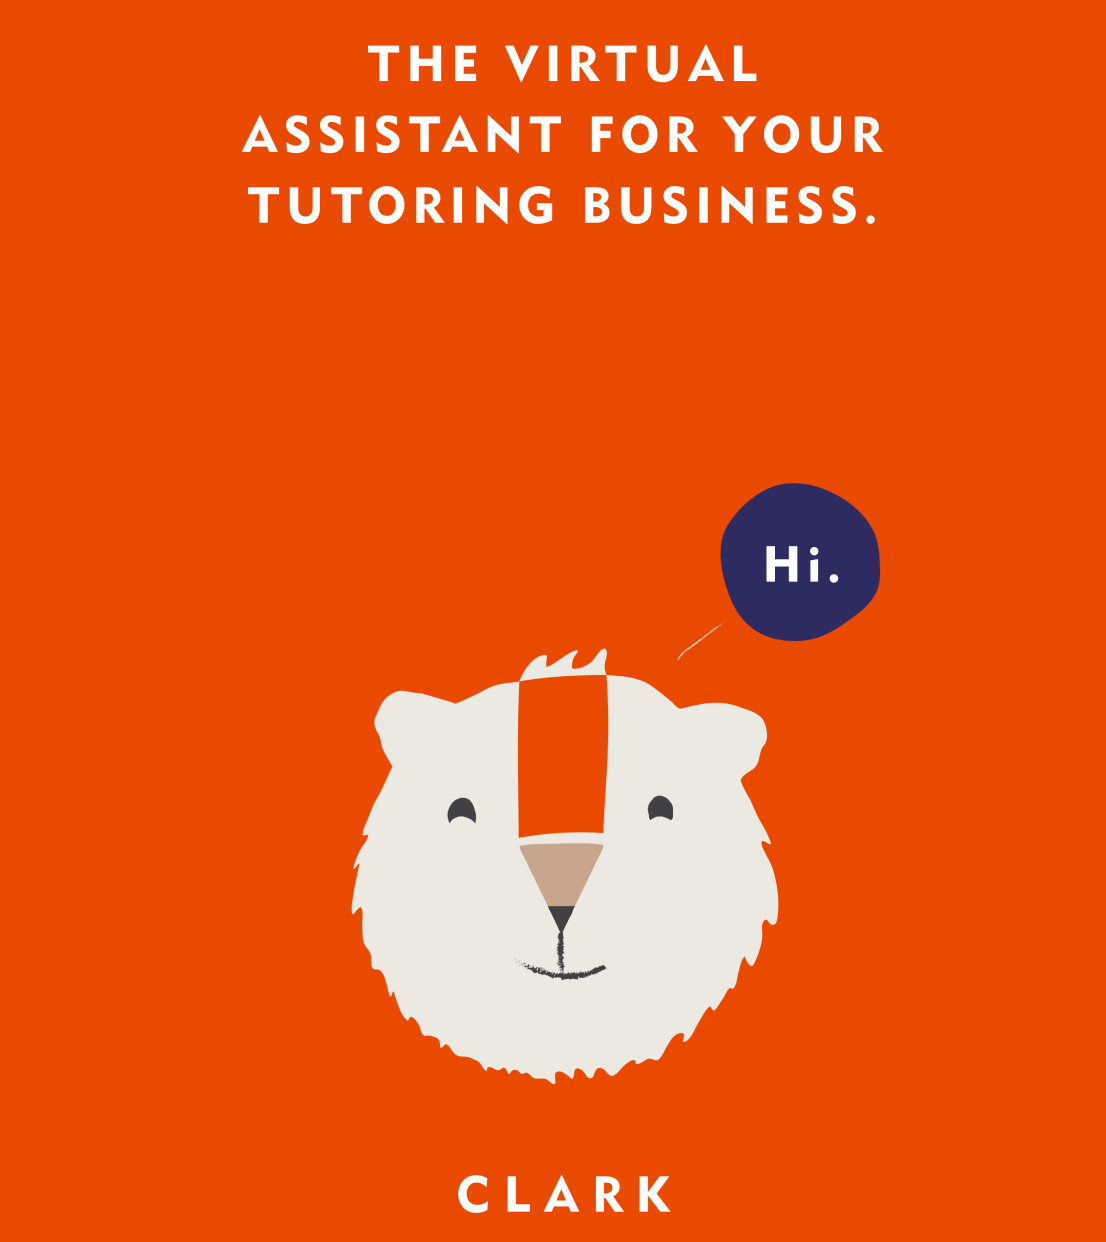 Clark Virtual Assistant For Tutoring